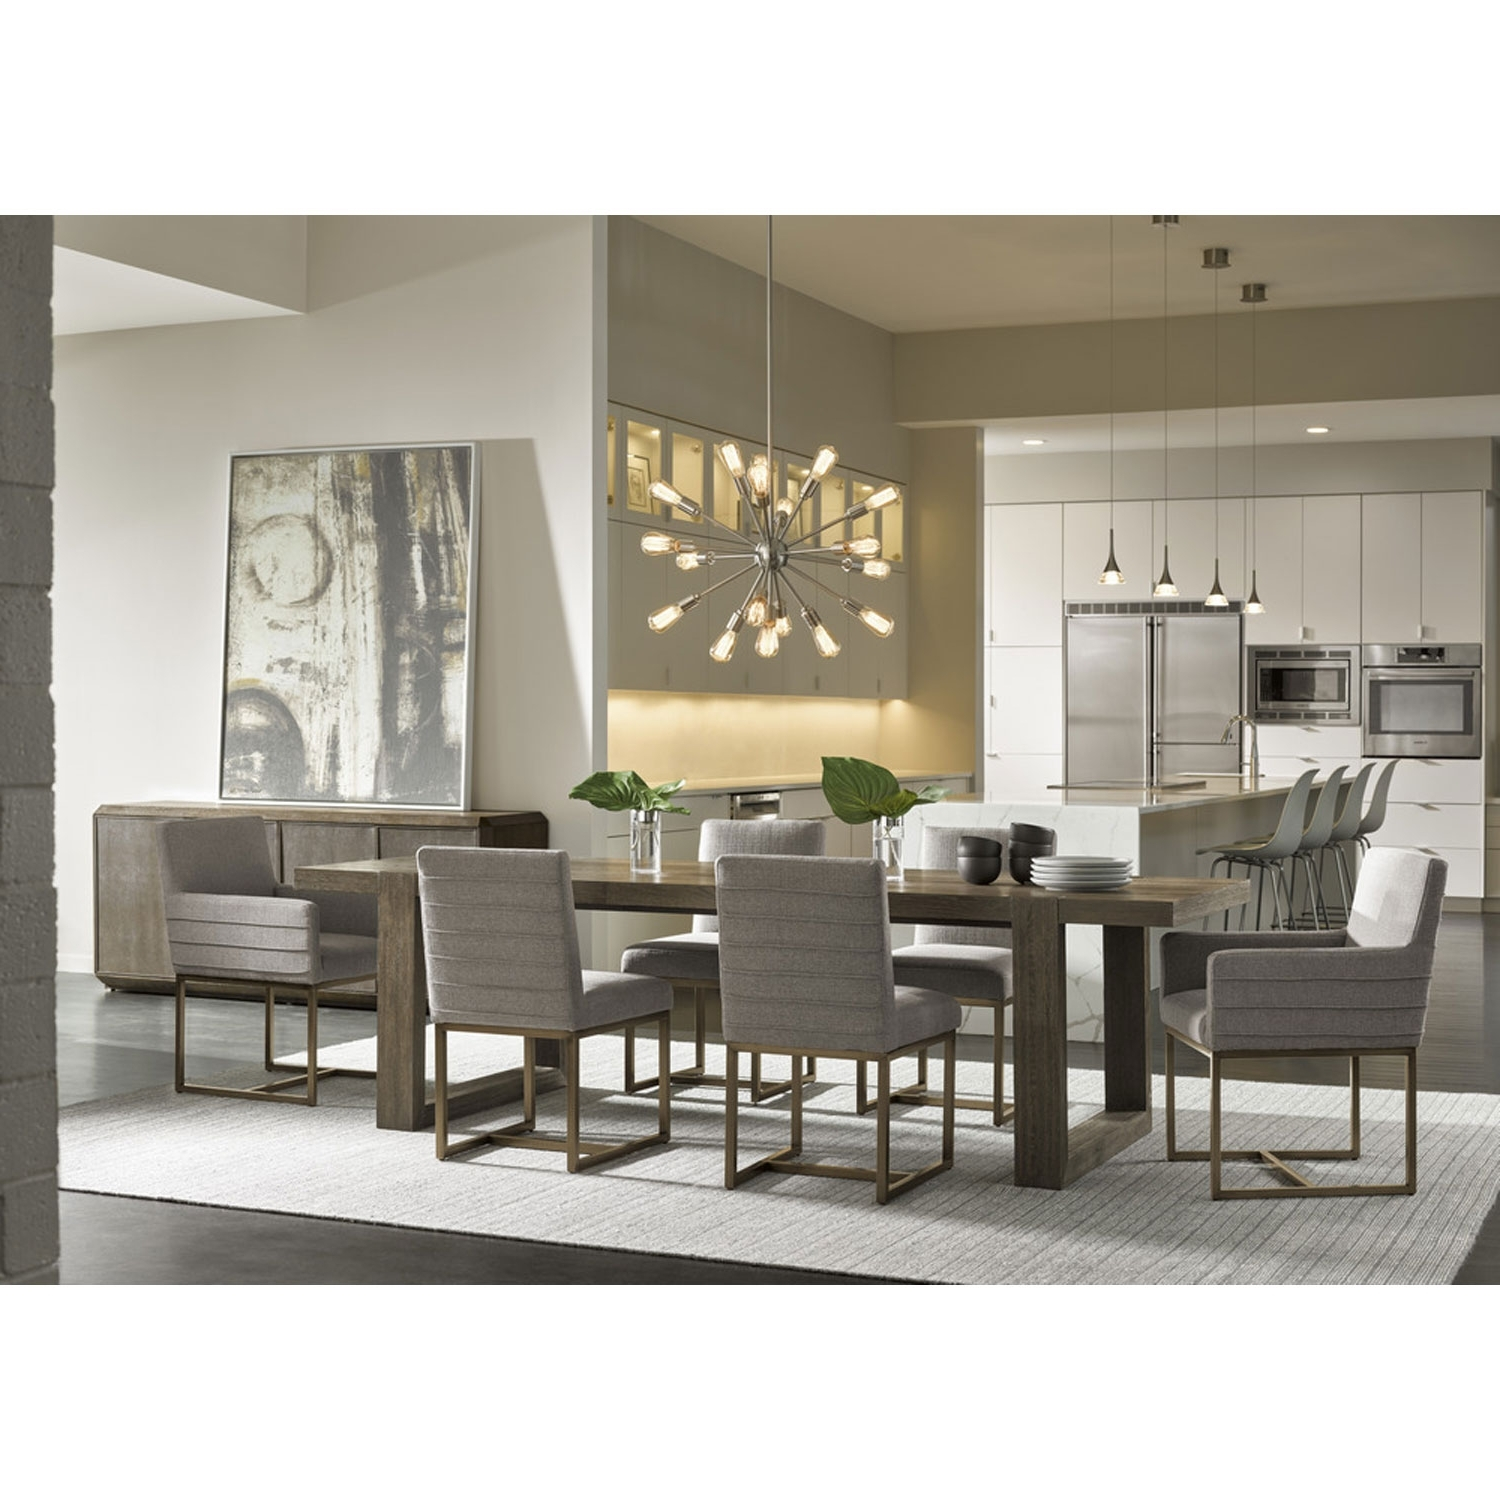 Bellacor In Universal Dining Tables (View 3 of 25)